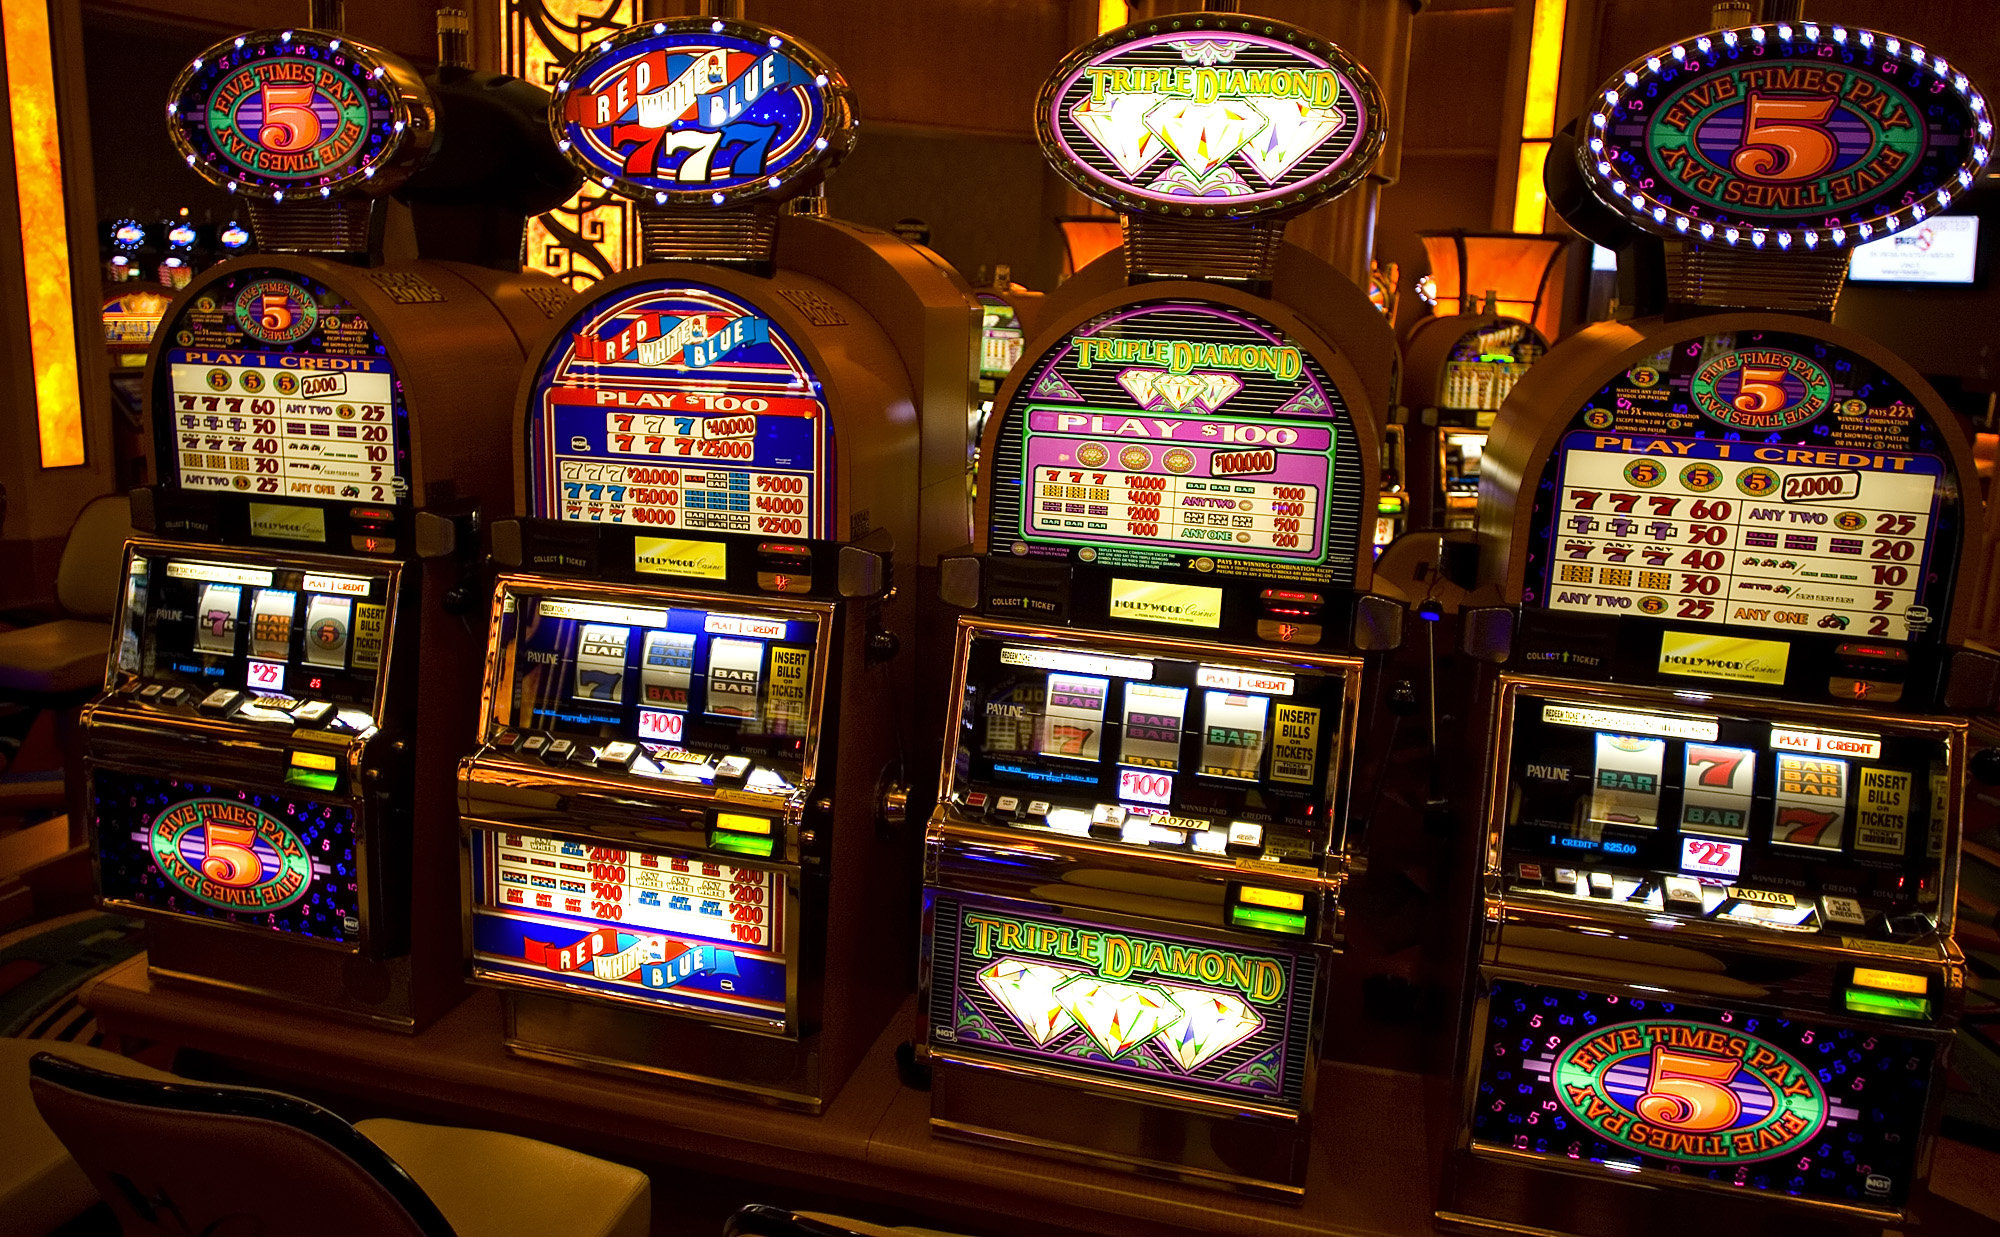 online slot games for money on9 games